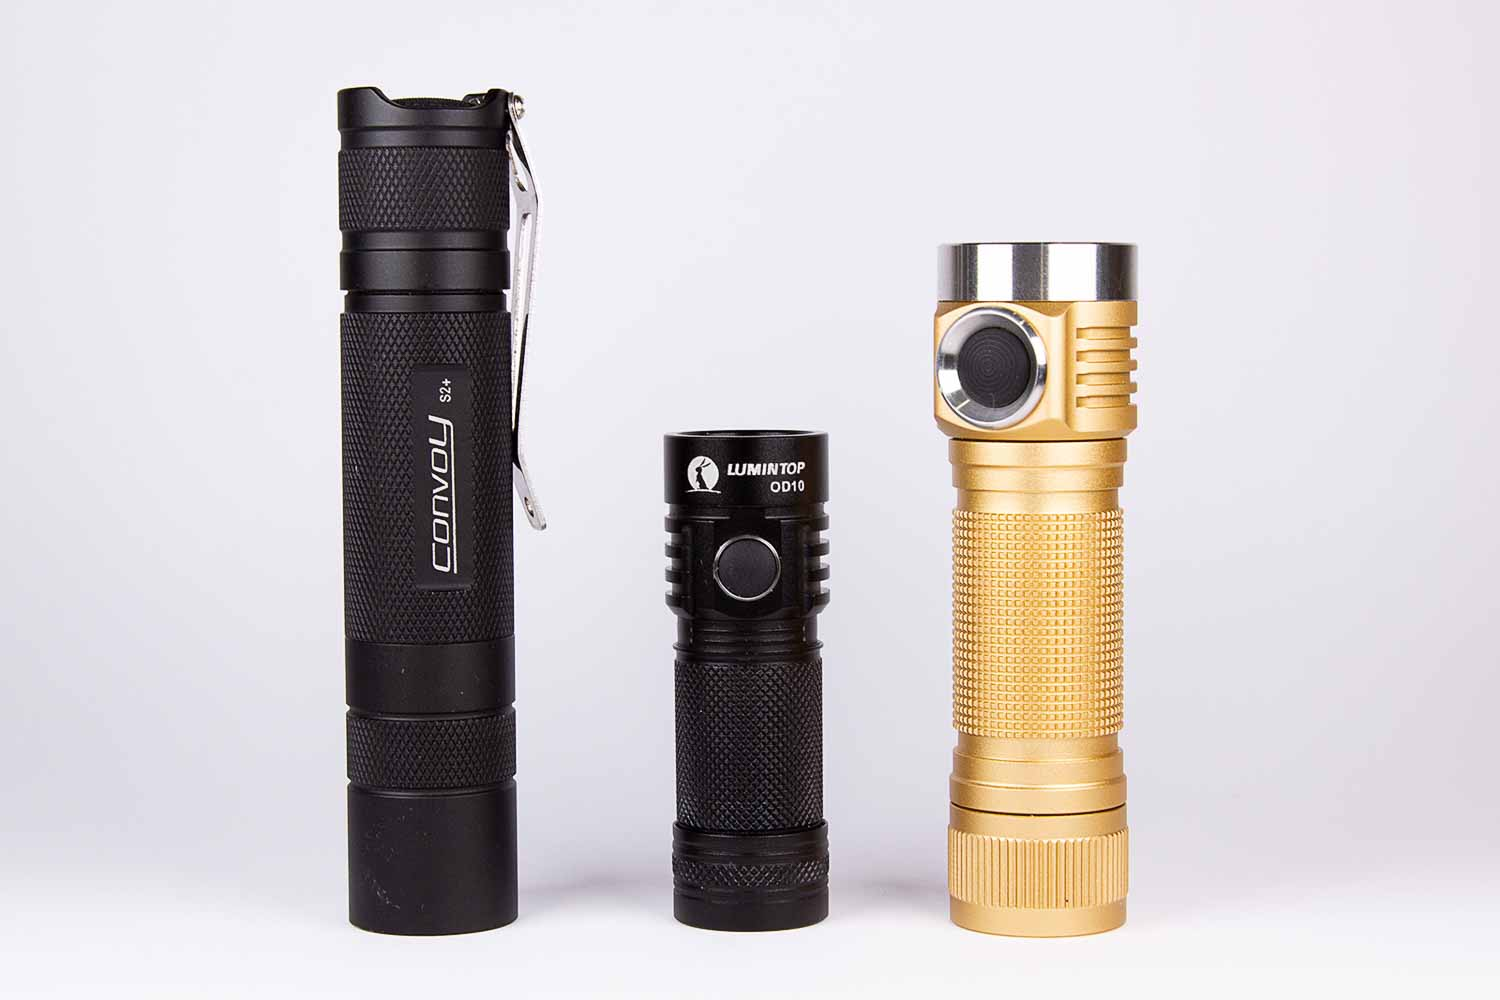 Lumintop OD10 size comparison